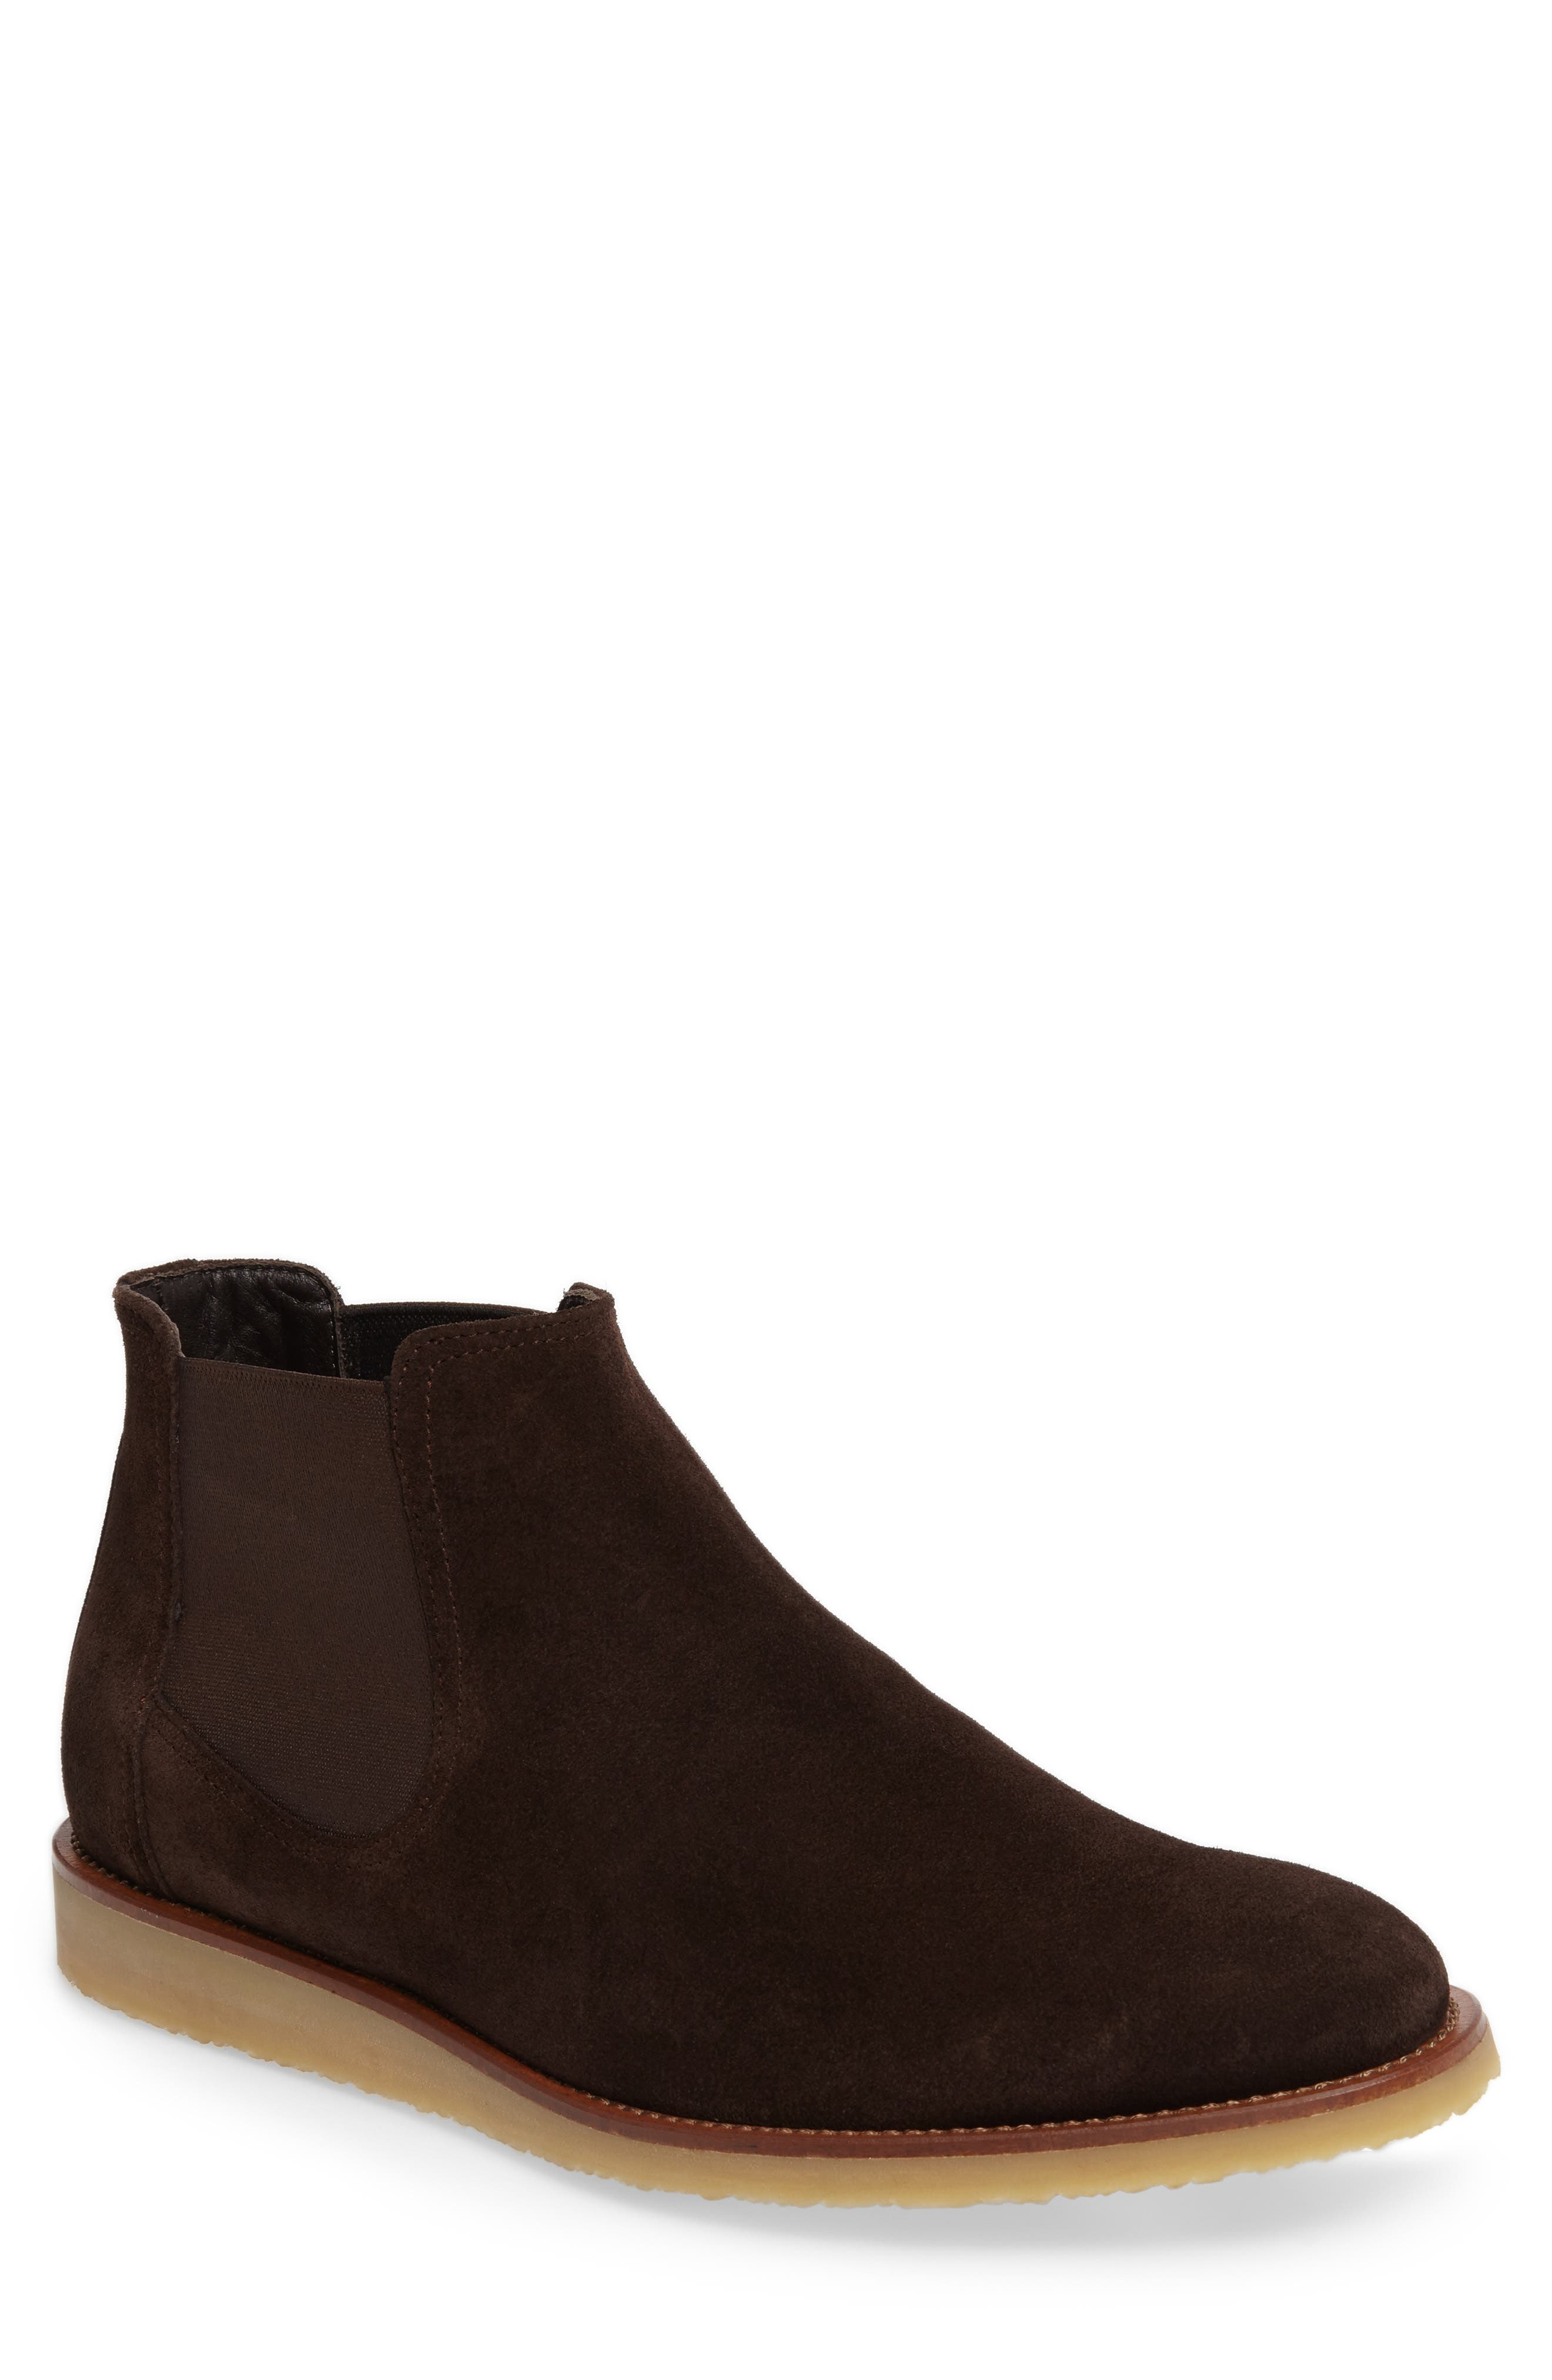 Alternate Image 1 Selected - To Boot New York March Chelsea Boot (Men)